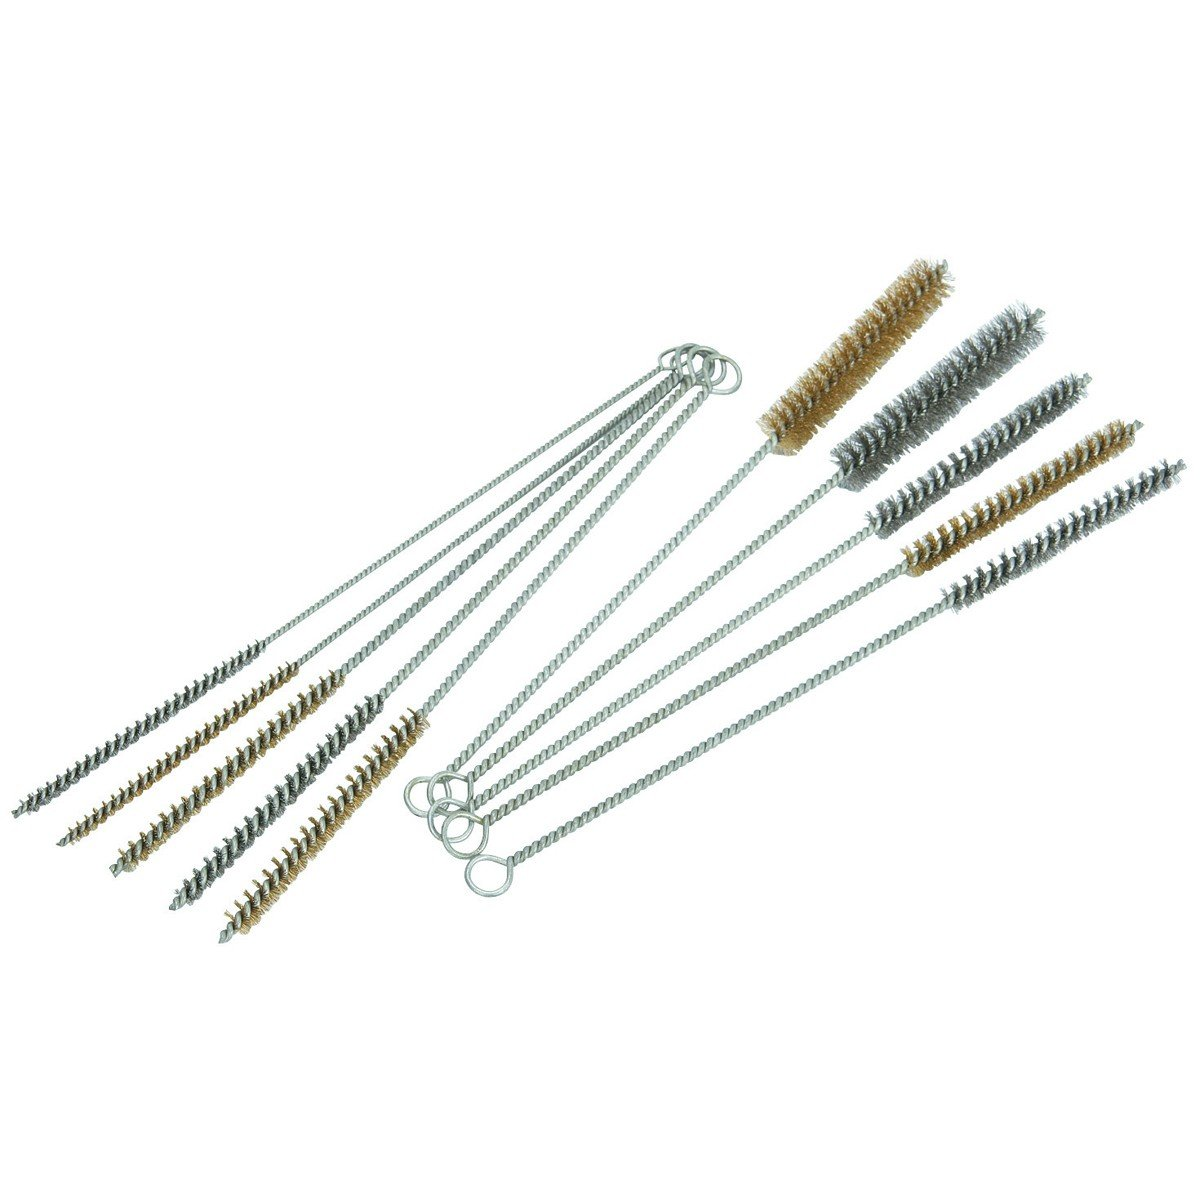 10 Piece Tube Bottle Brush Kit Brass Stainless Steel Bristle 12'' Long, Size 1/4'' to 3/4'' PMD Products